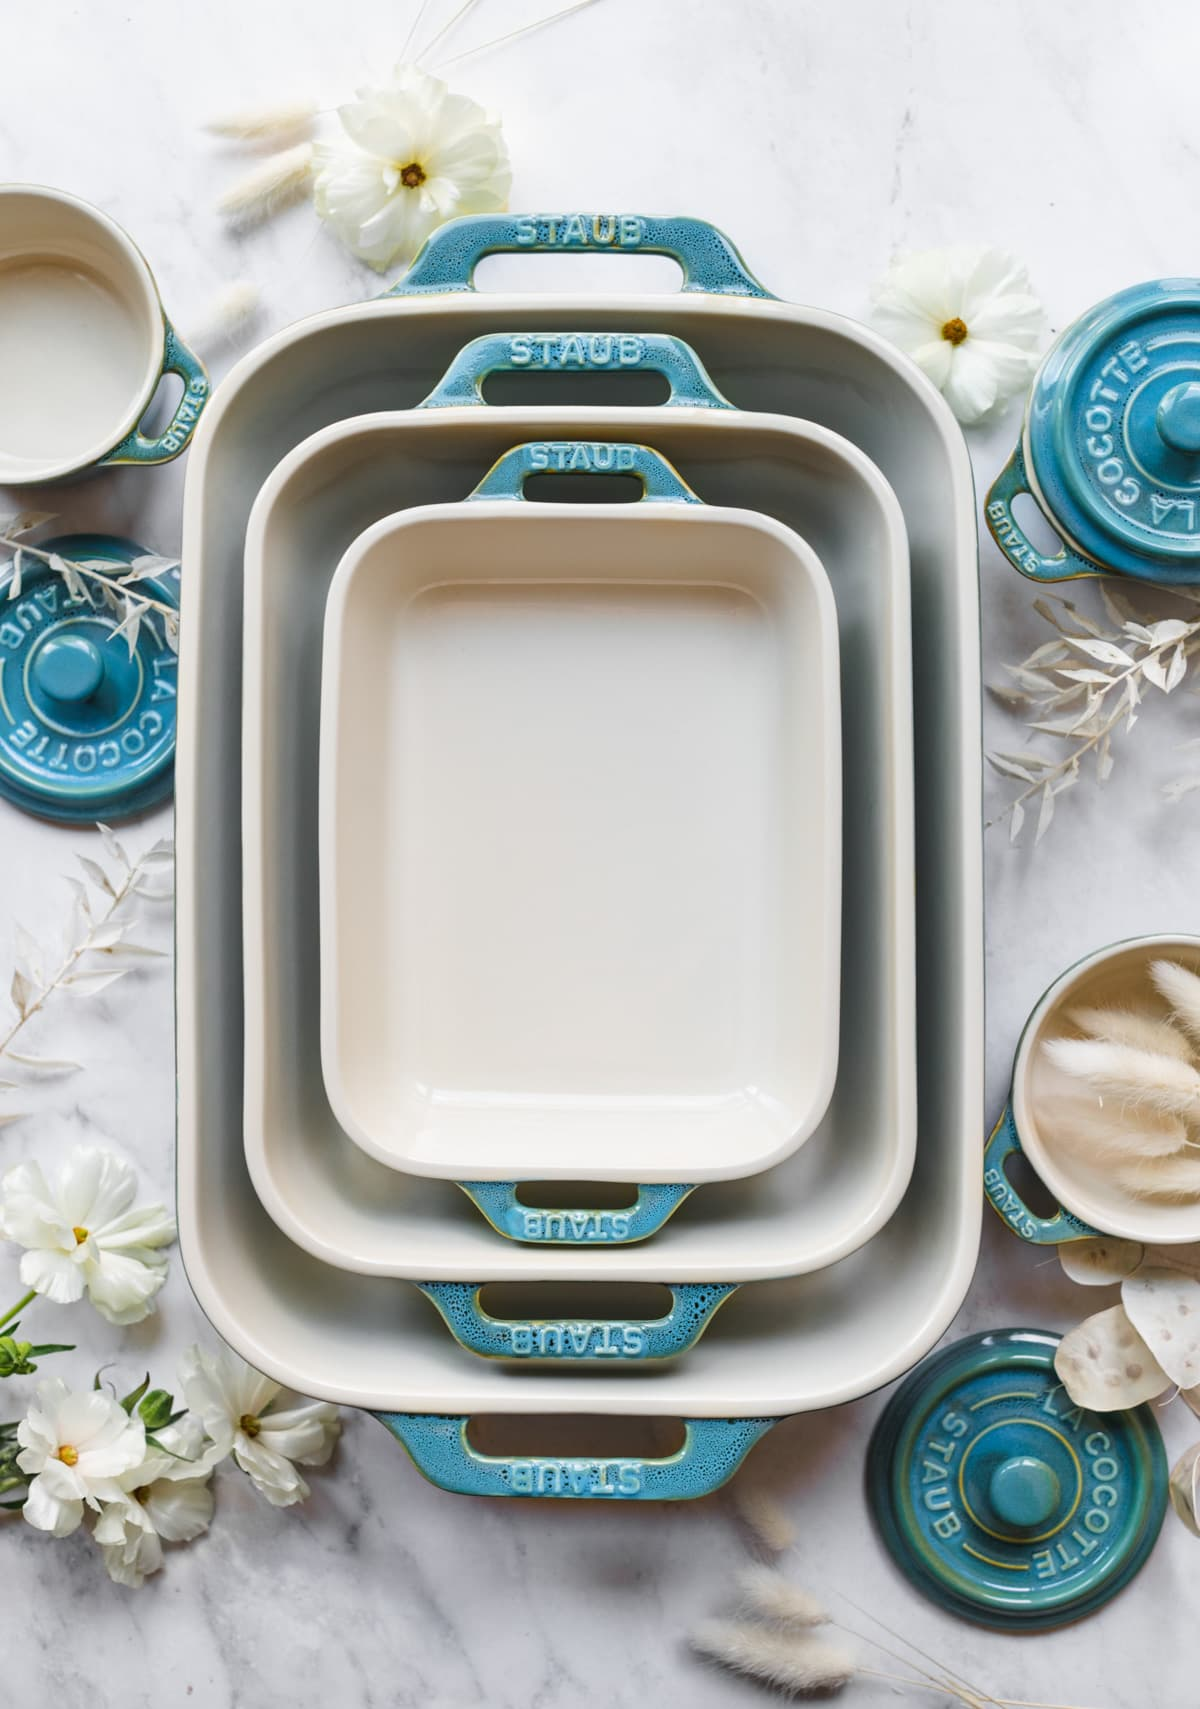 overhead view of Staub turquoise ceramic baking dishes and cocottes on marble surface.